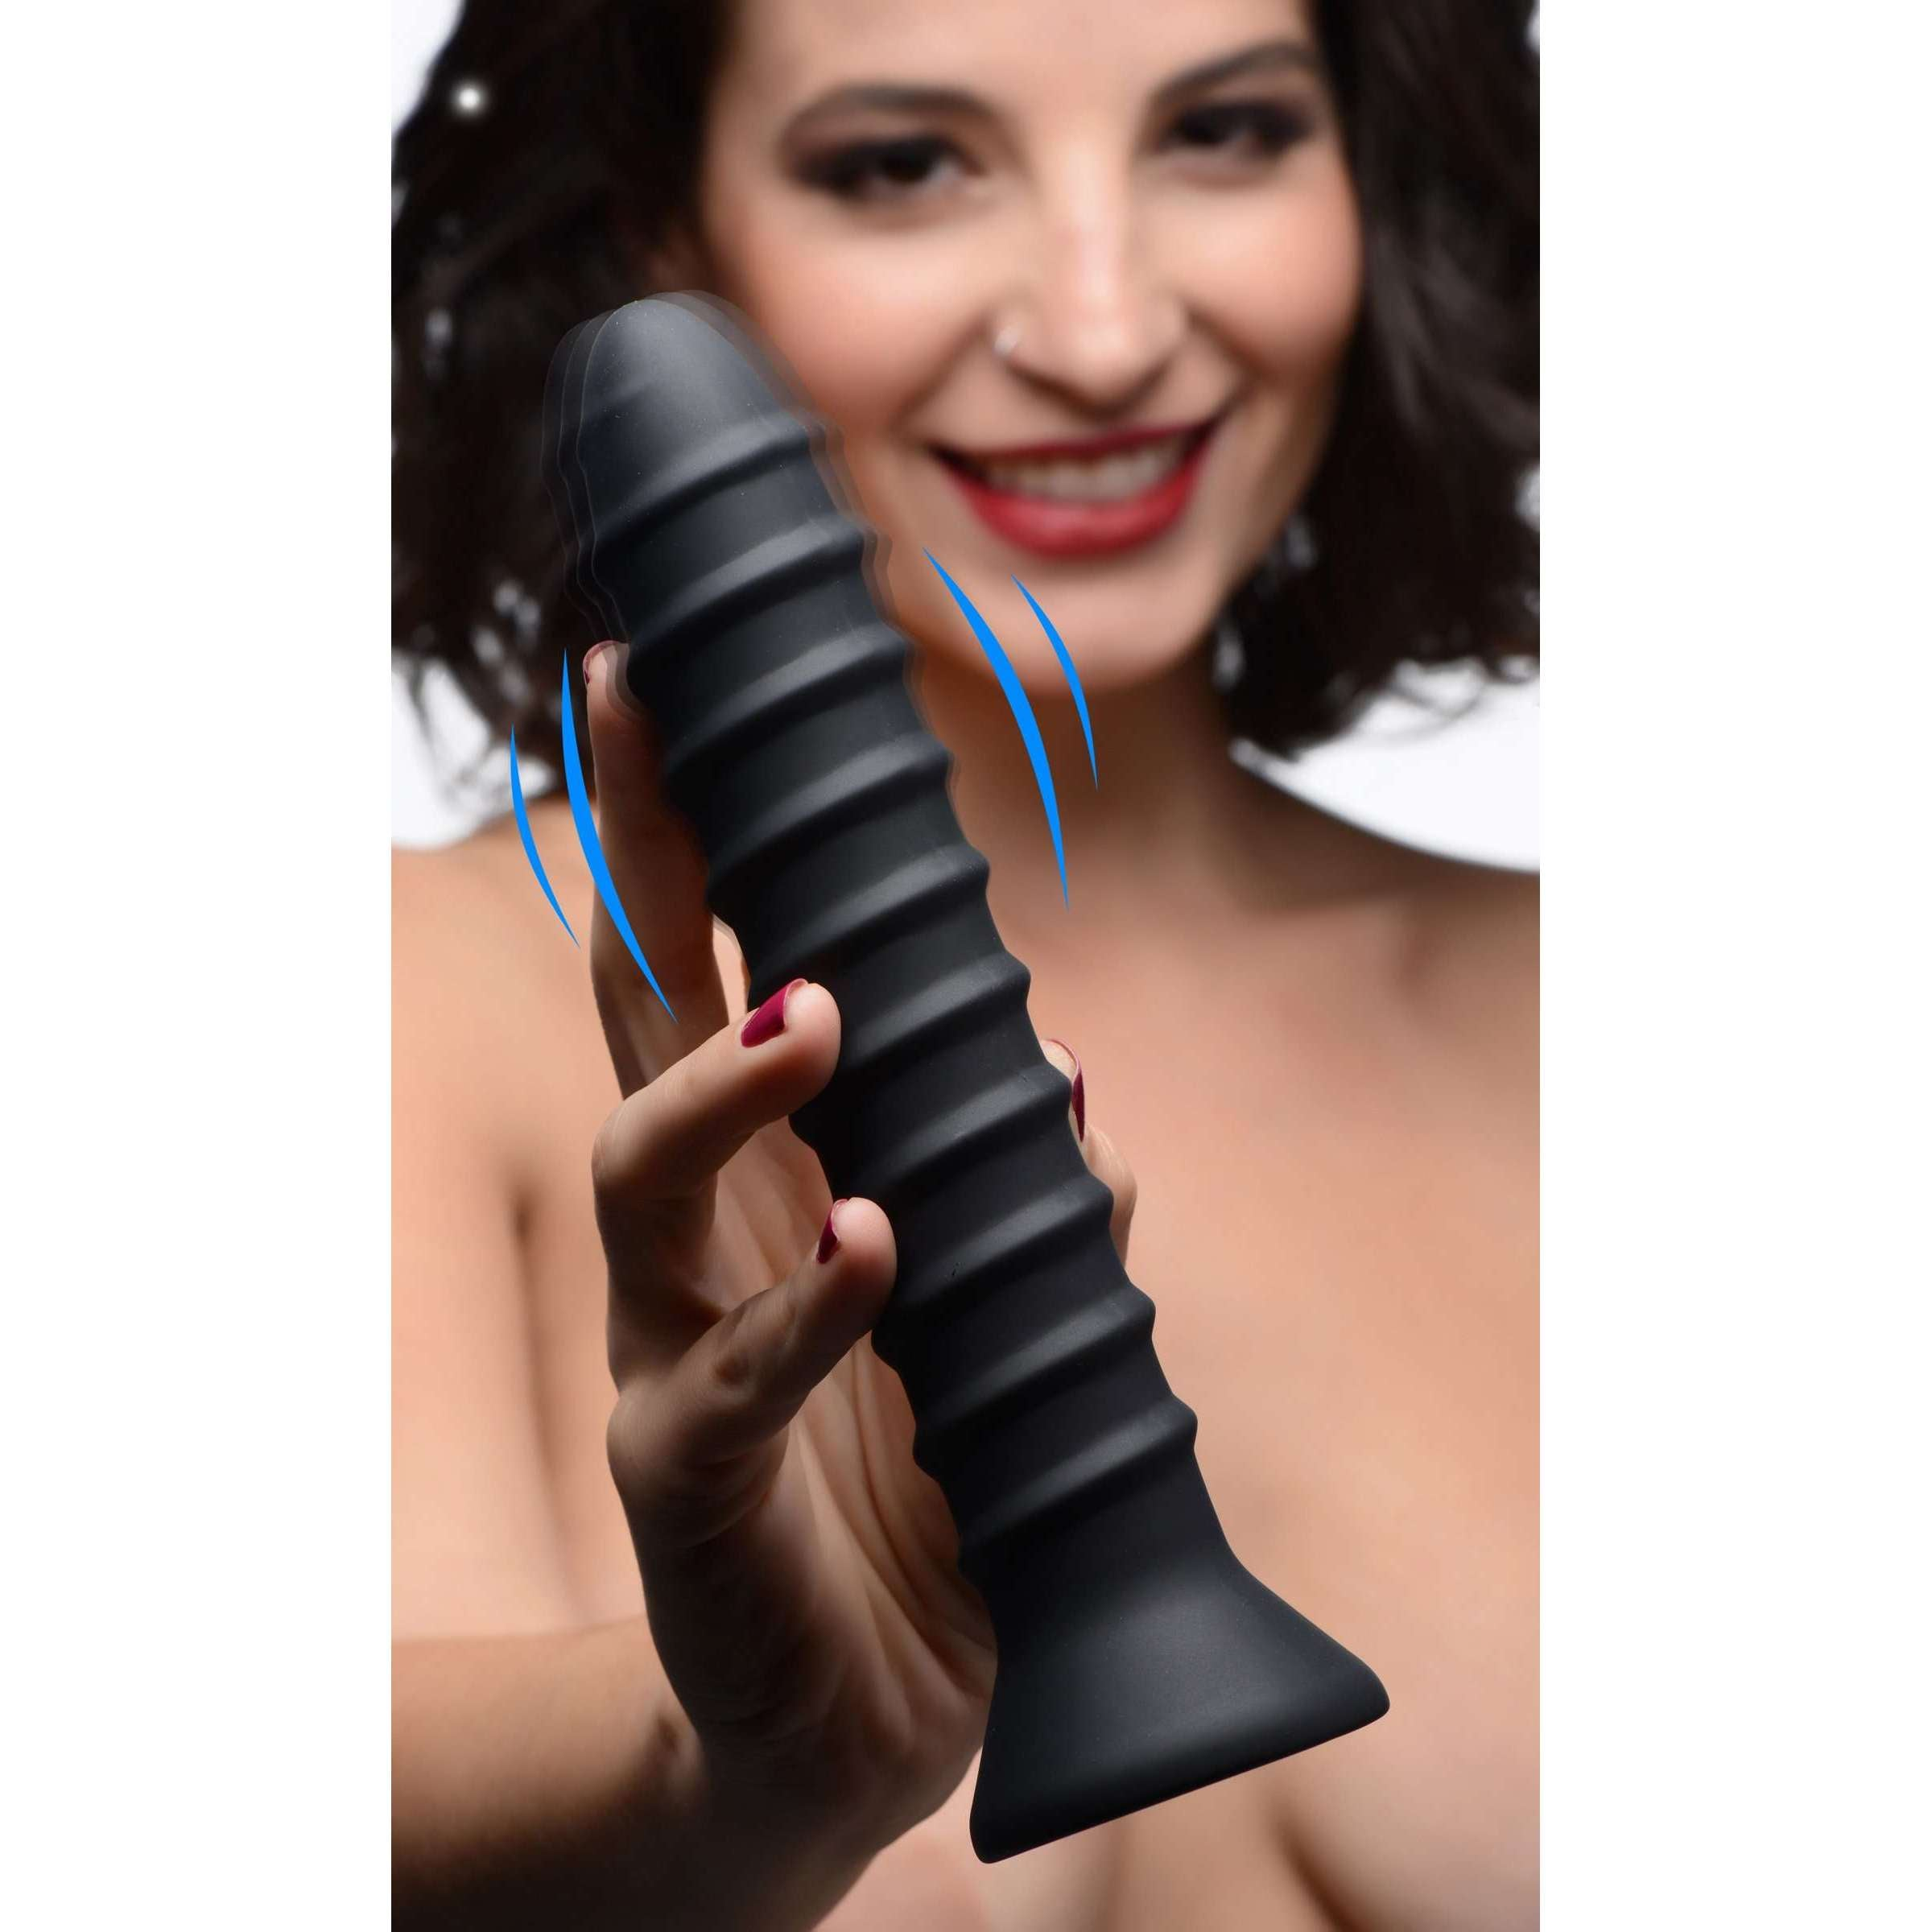 Power Screw 10X Spiral Silicone Vibrator